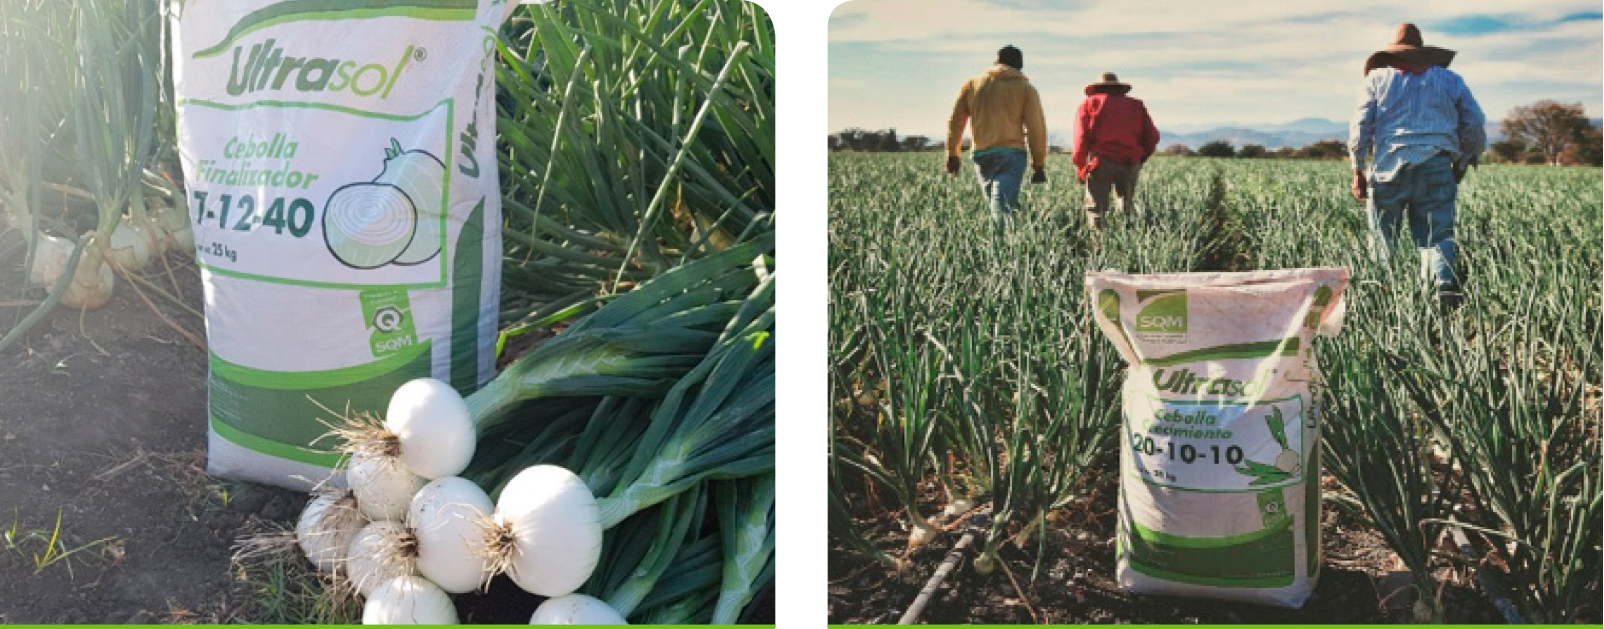 A professional photographer took pictures and recorded a video presenting the testimonial of farmer Julio Castañeda Reyes on his positive experience of collaboration with SQM and the benefits brought by use of the Ultrasol® formulas.